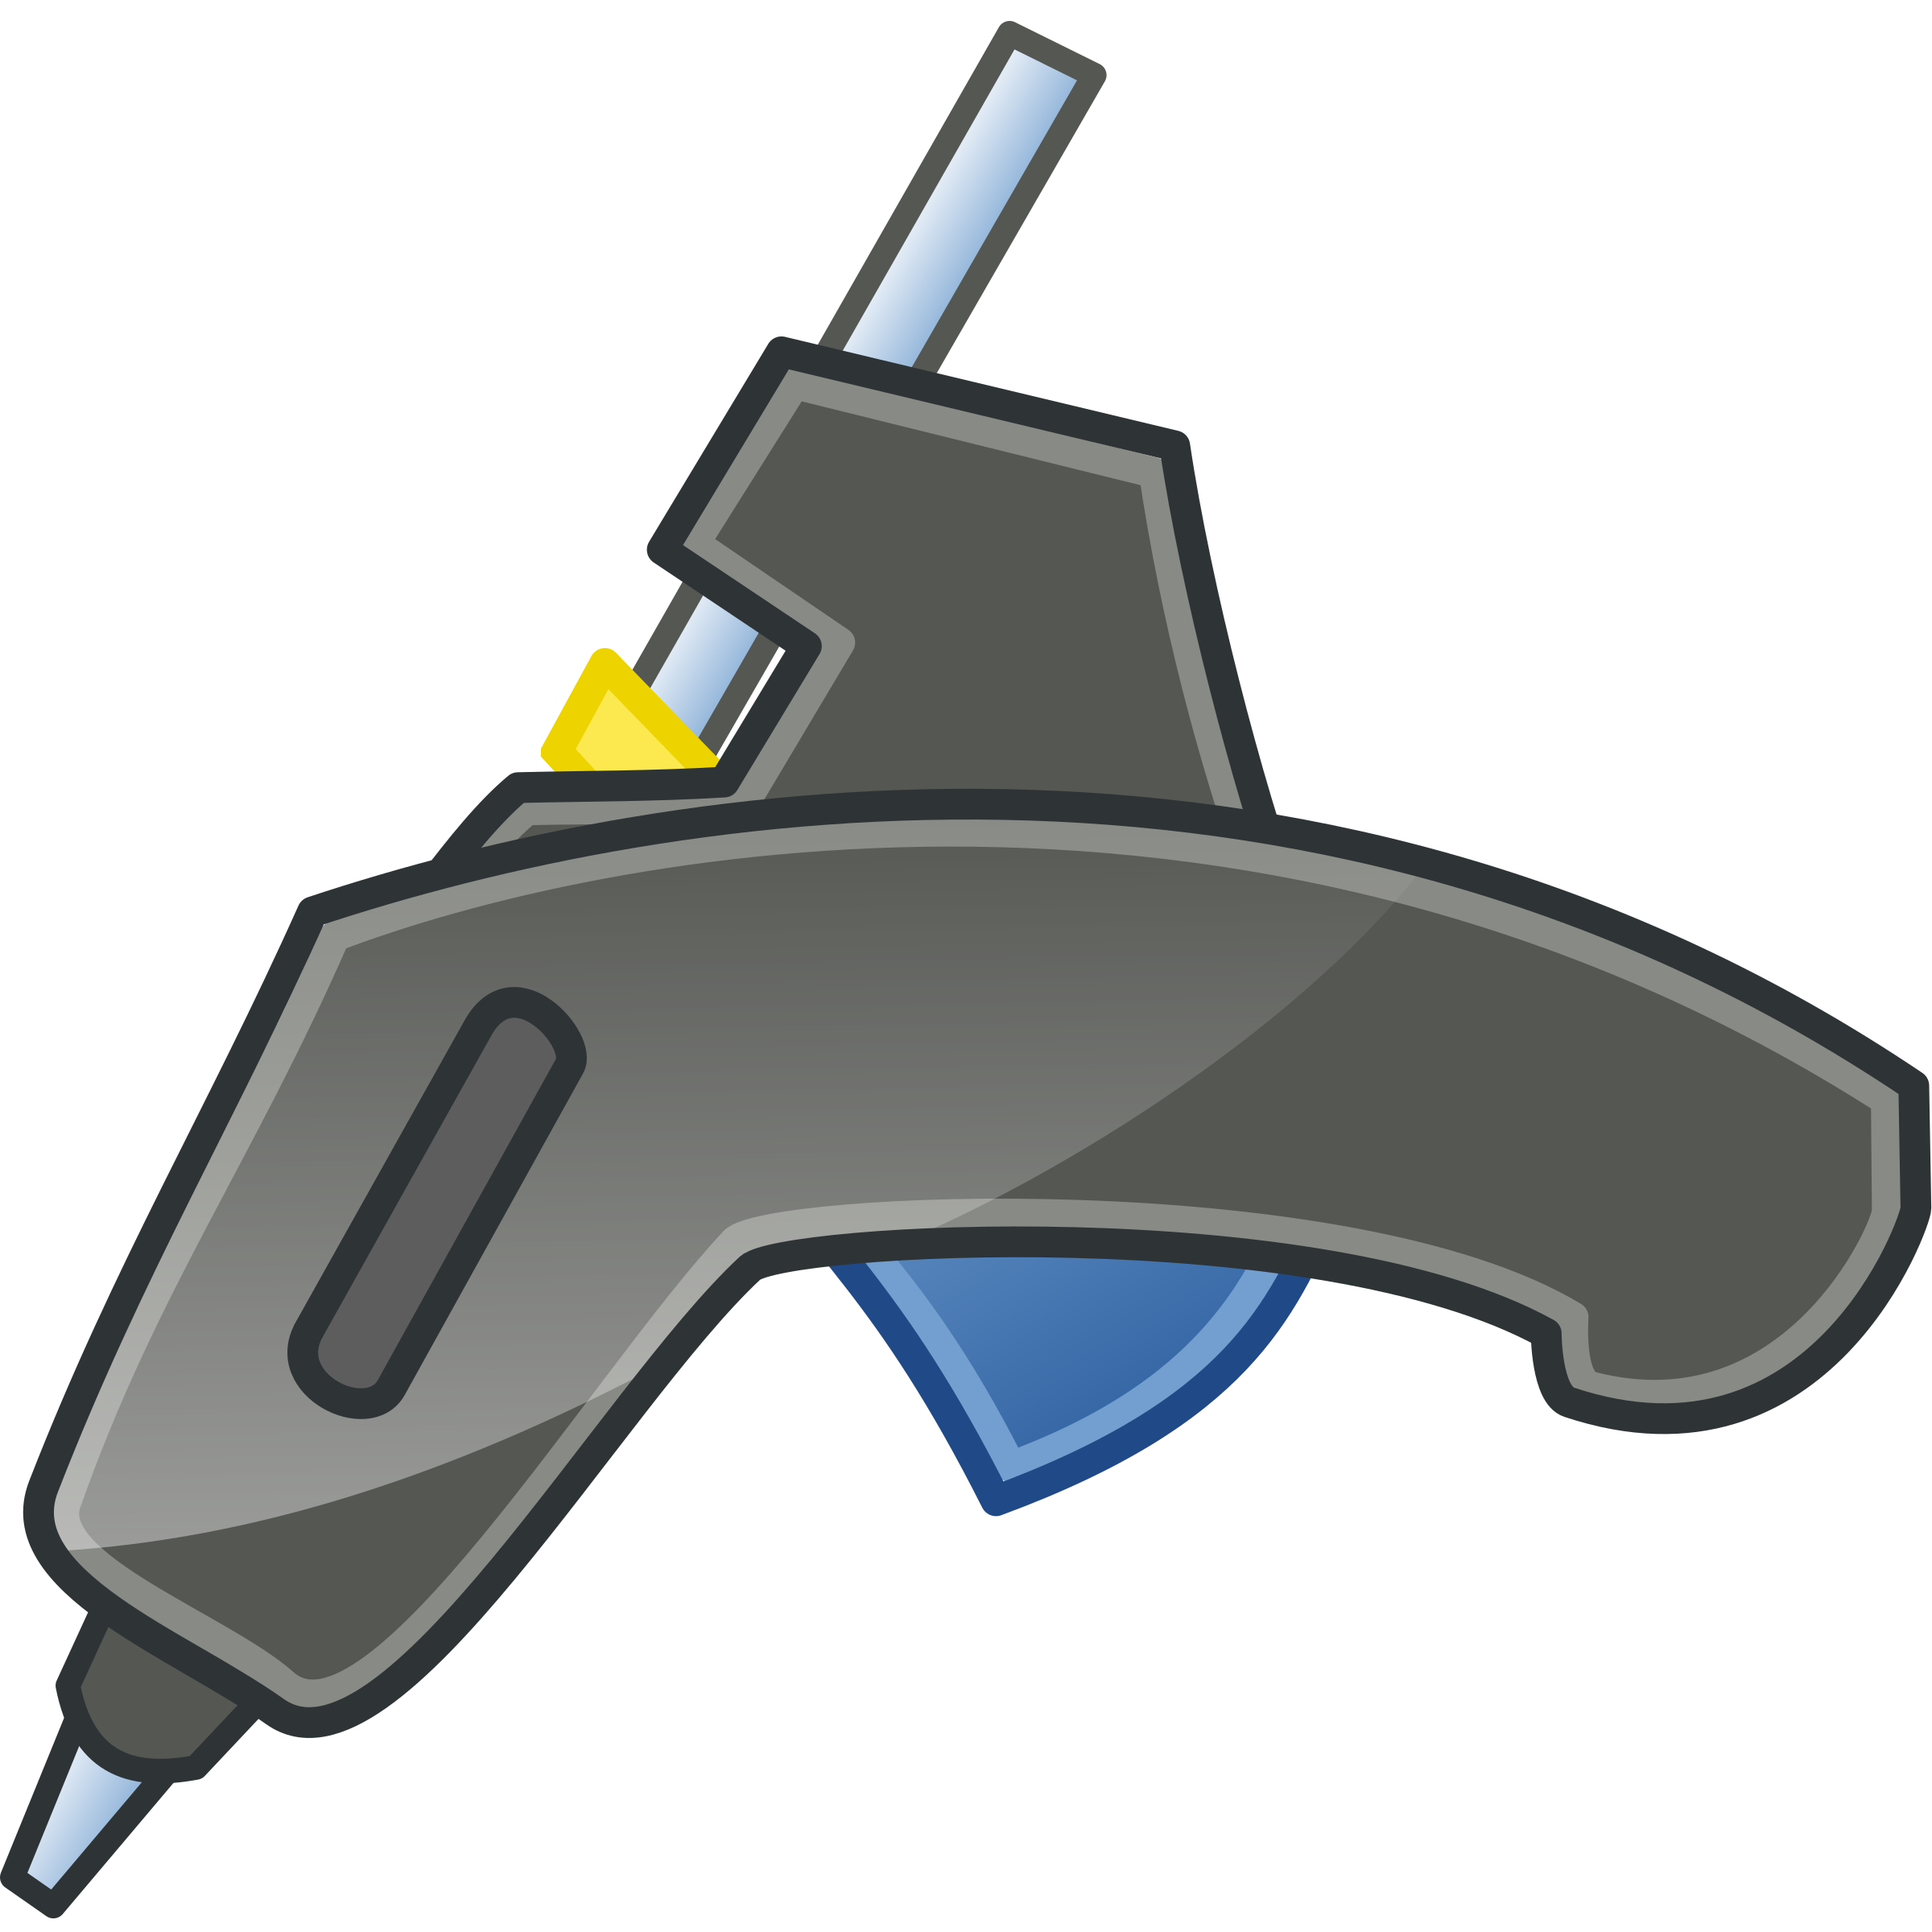 Glue Icon image #16239 - Free PNG Glue